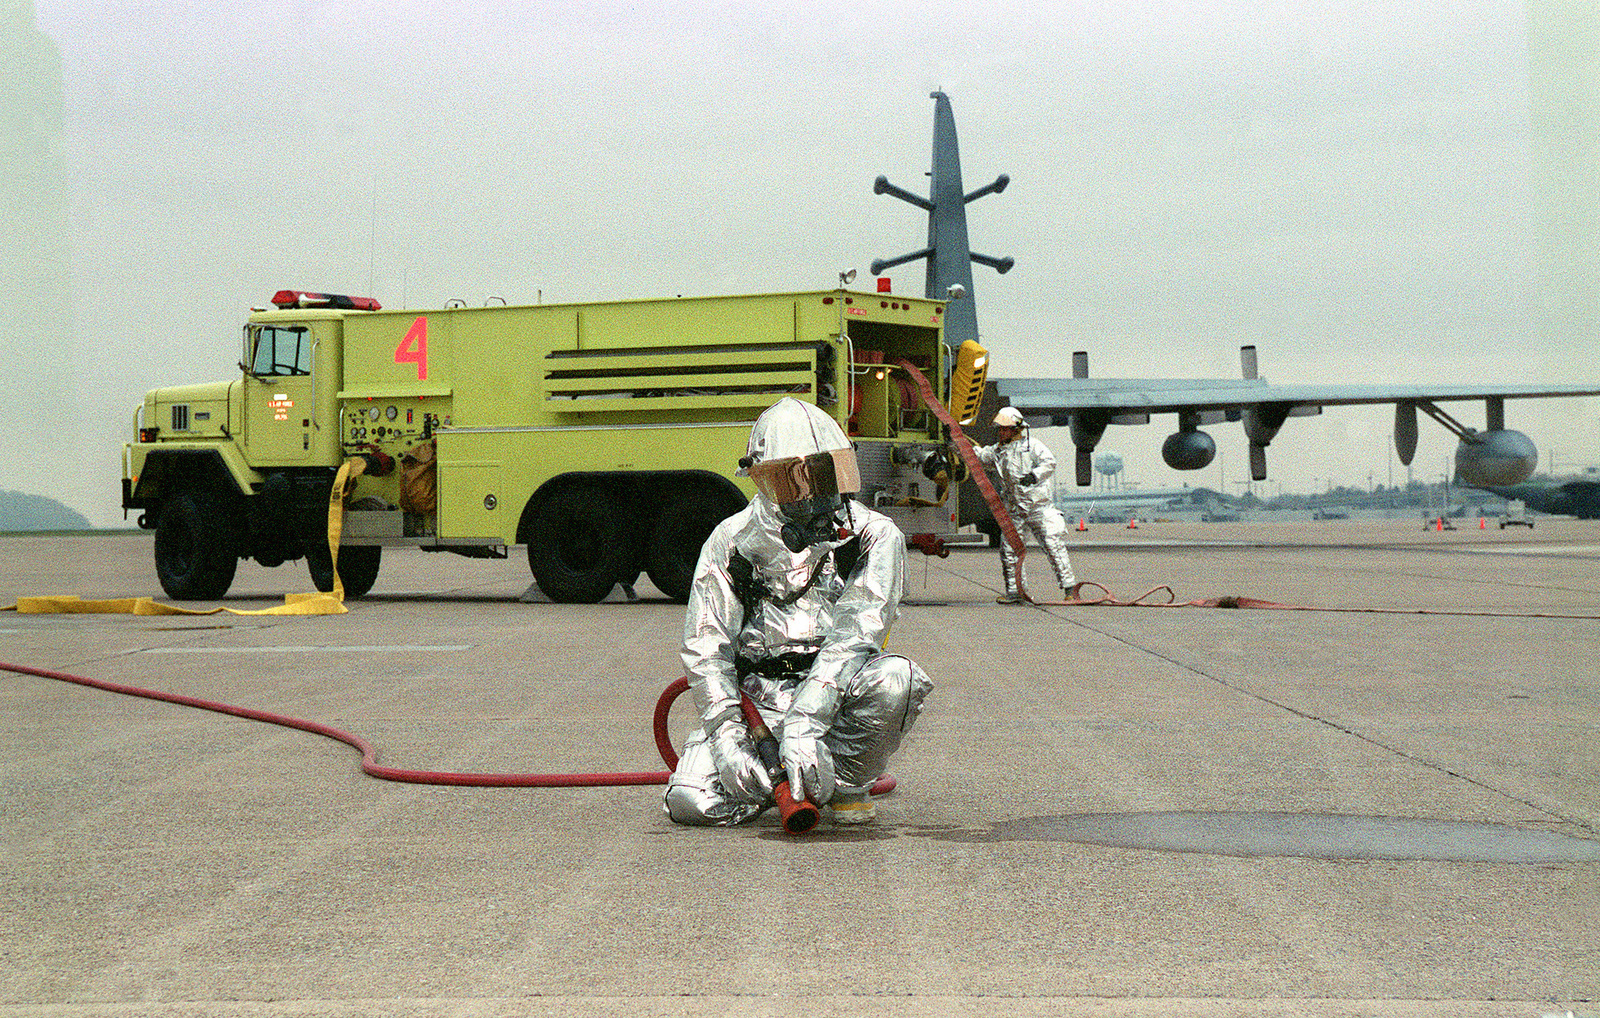 On the flight line at the 193rd SOW, a member of the 193rd Civil Engineering Fire/Crash Rescue Personnel kneals in preperation of extinguishing an aircraft fire during the Ability To Survive and Operate (ATSO) excercise